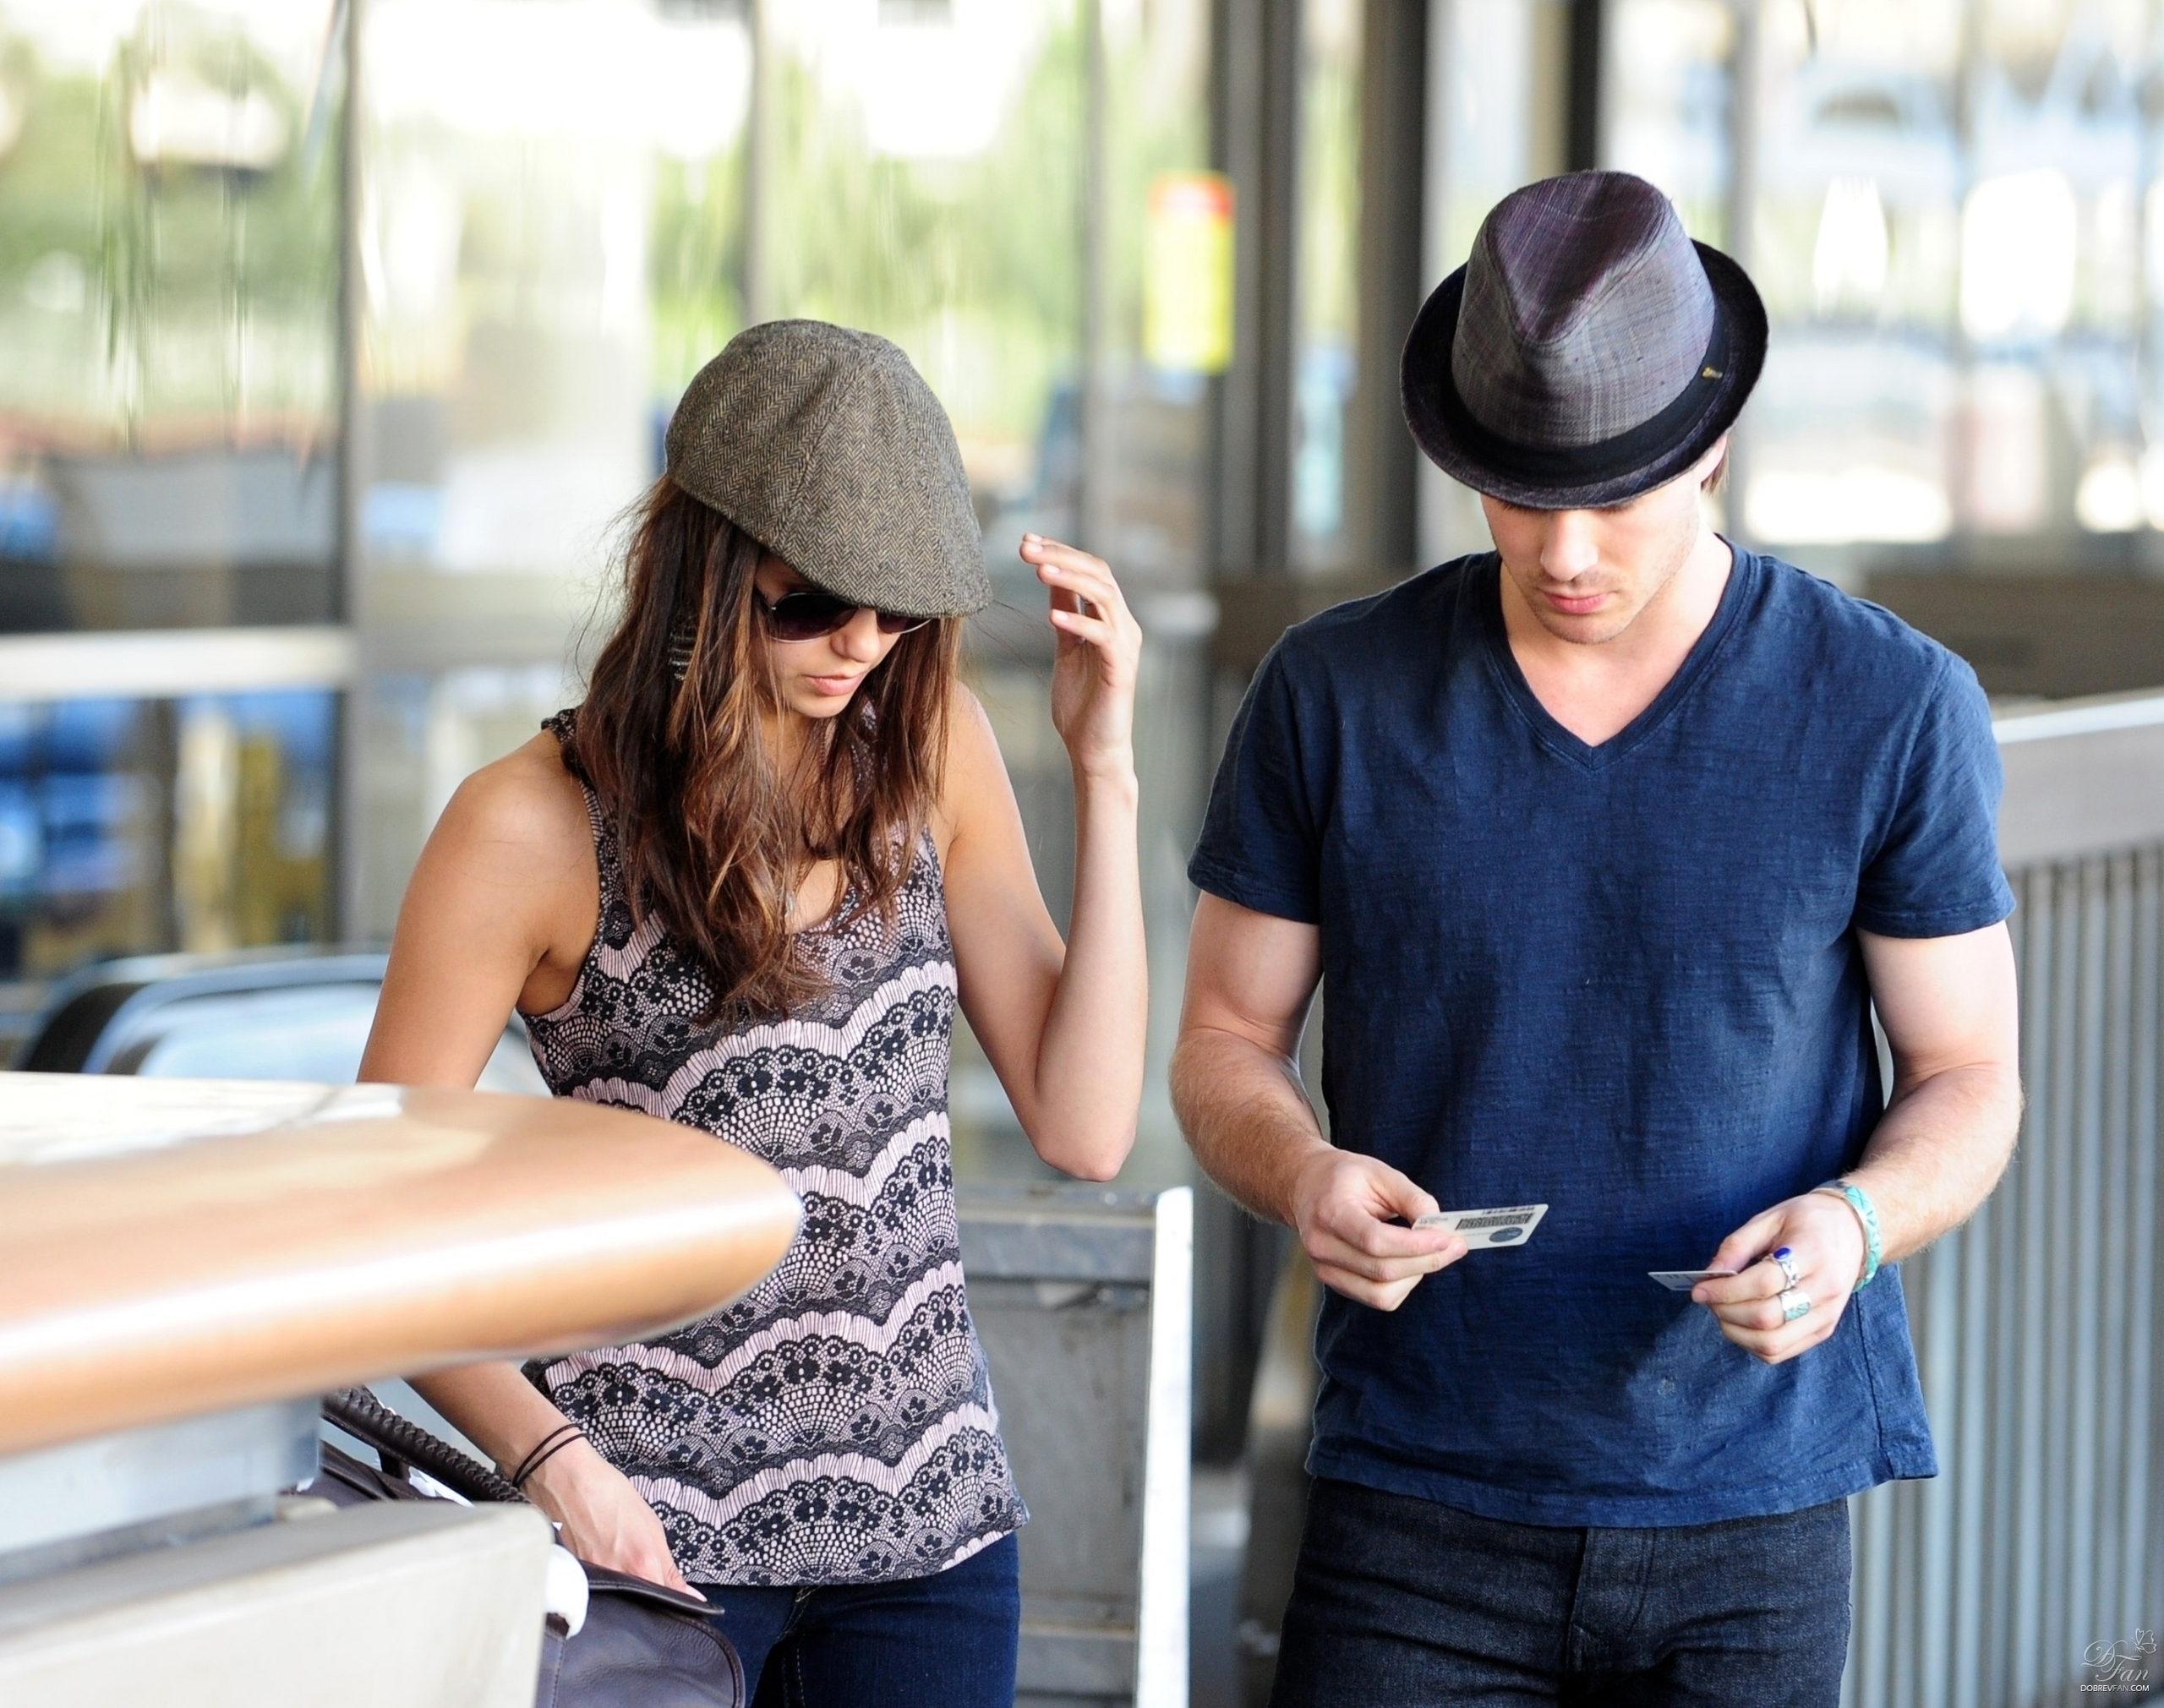 ian somerhalder dating 28 march 2018 ian somerhalder and nikki reed photos, news and gossip find out more about.